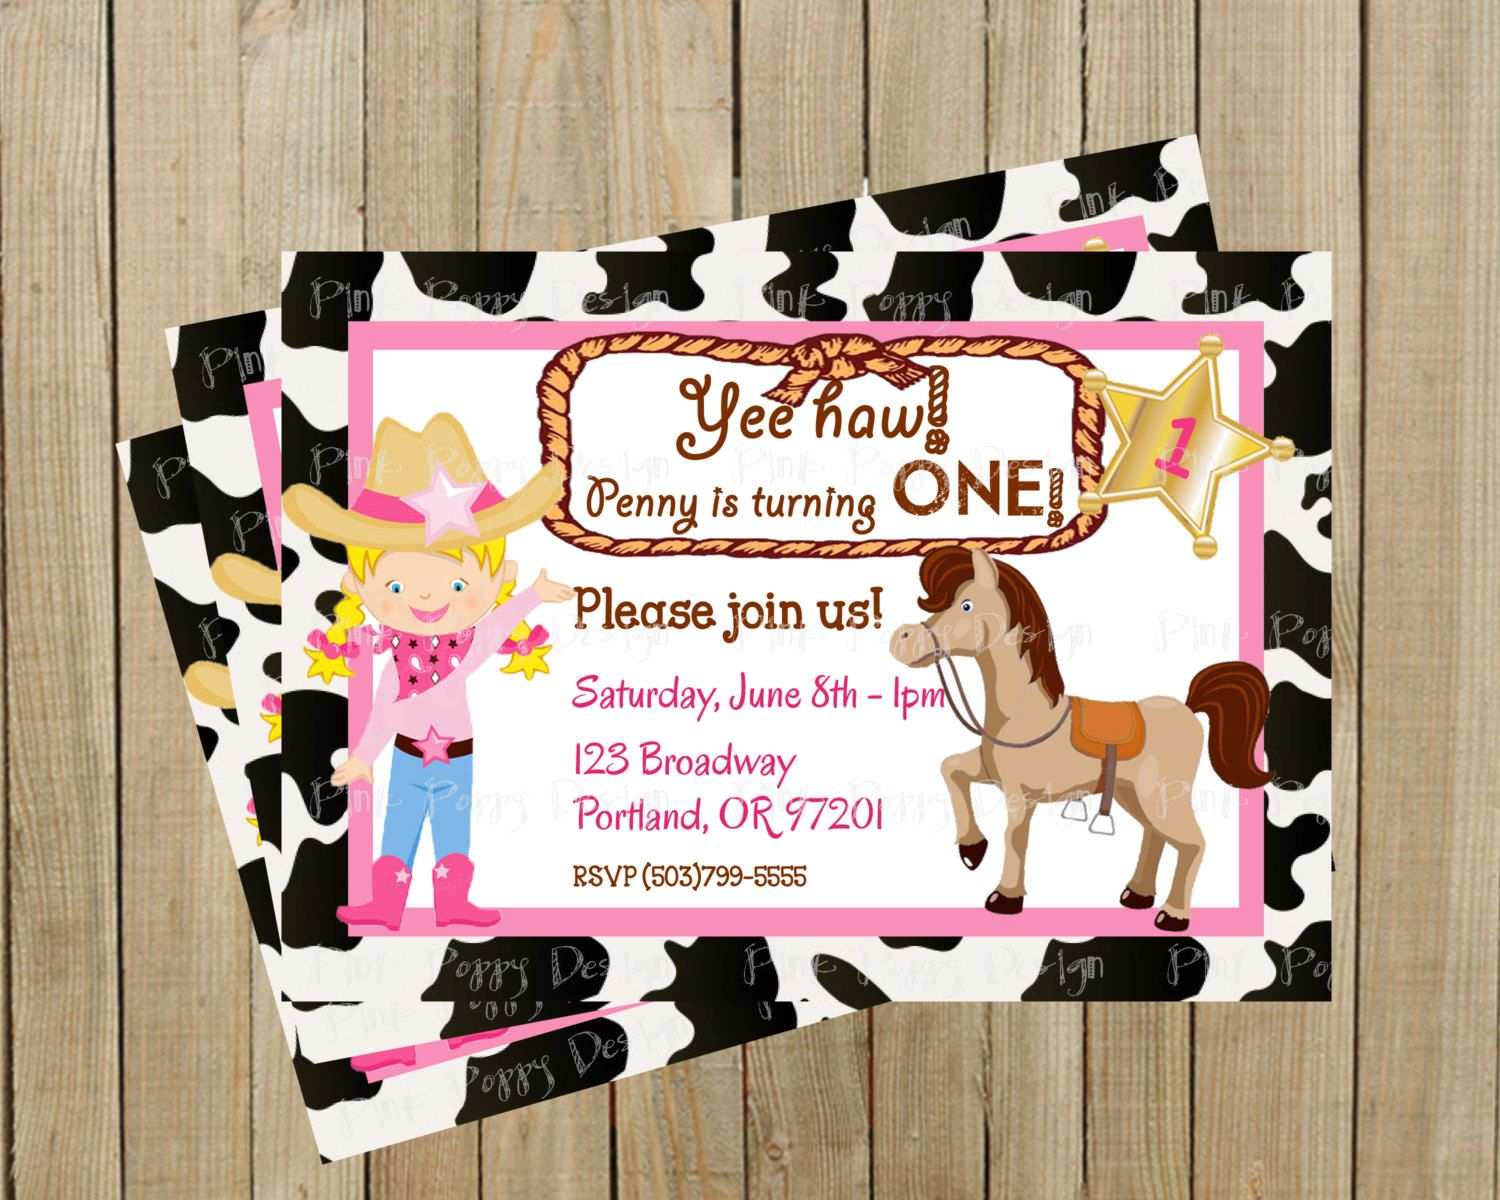 Adorable cowgirl with horse on cow print first birthday invitation adorable cowgirl with horse on cow print first birthday invitation custom digital file pink filmwisefo Images